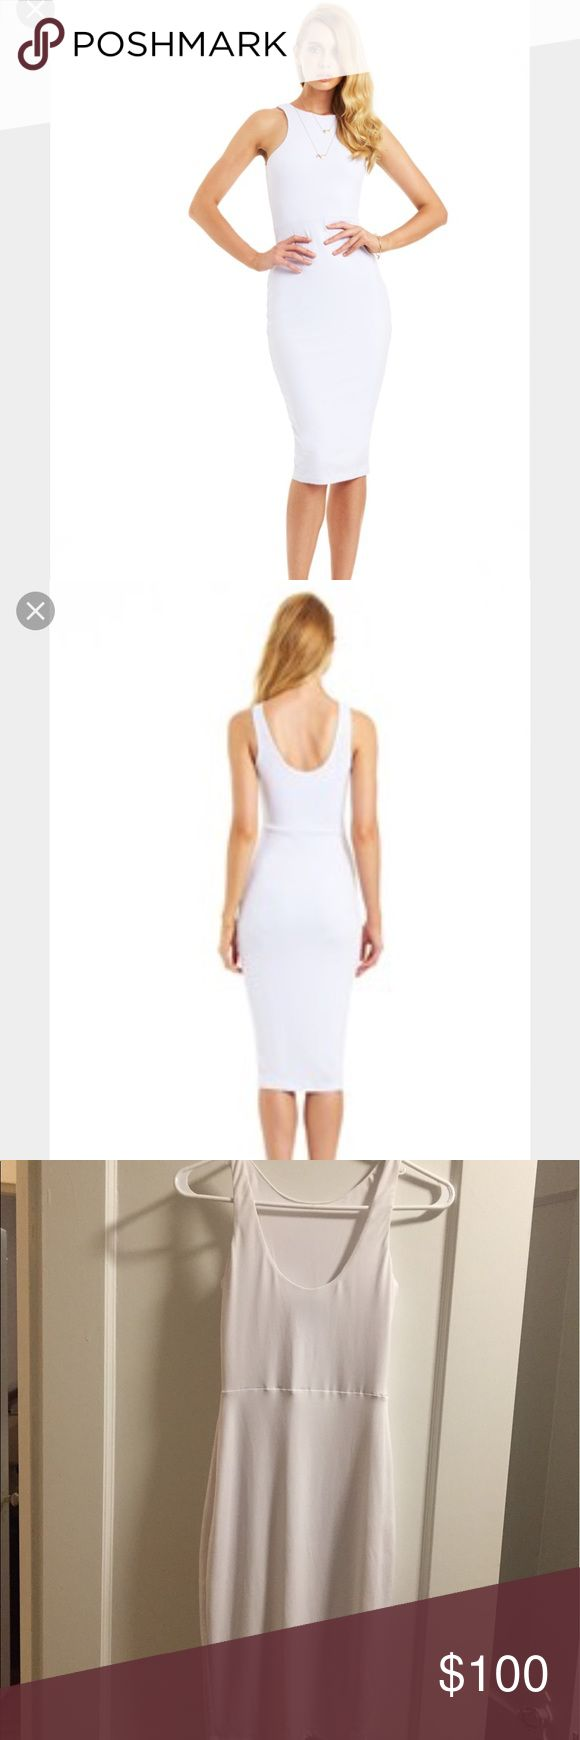 White nookie dolce vita dress Size 8 aus (size small). This dress is lined with zipper. stretchy material. Can be worn scoop neck or high neck either way. Only worn one time. Somehow i snagged it on something as you can see in the last pic. This is up close and you can't really tell when the dress is on since it's at the bottom. However I adjusted the price to match the flaw. Other than that this dress is in great condition! Zara Dresses Midi